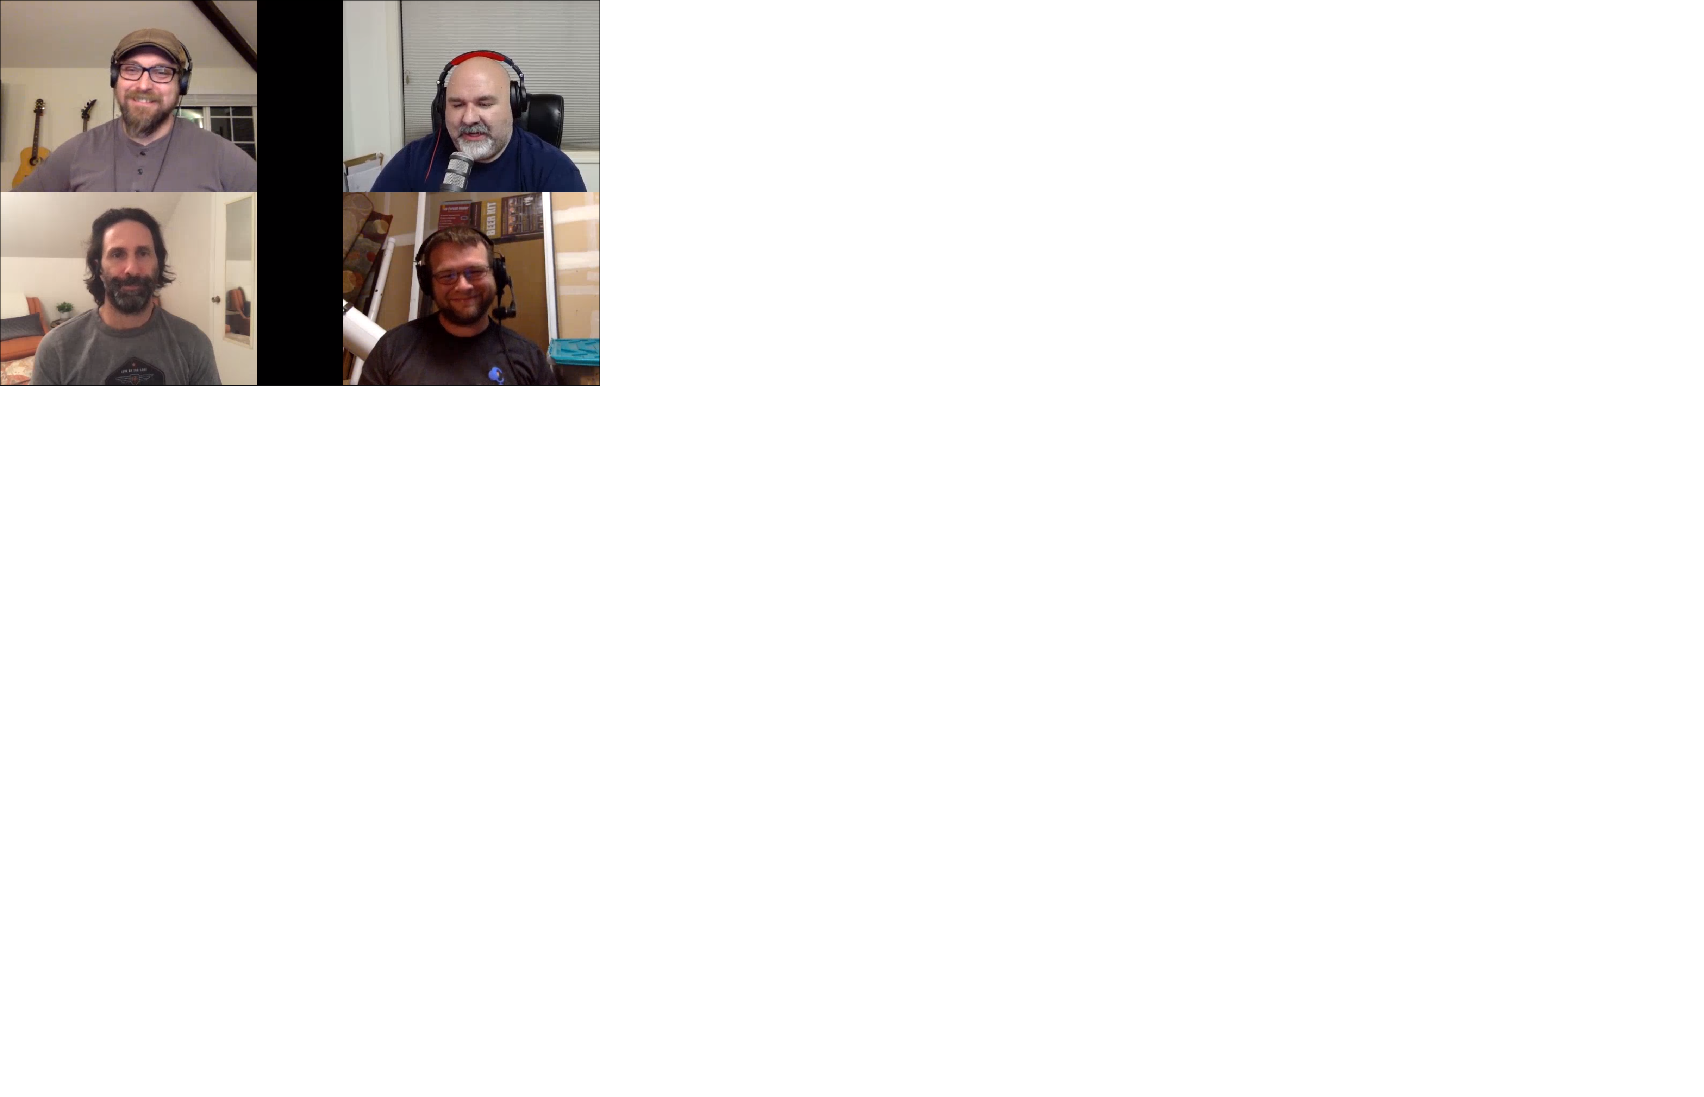 2020 12 03 12 12 08 TheCloudPod Twitch